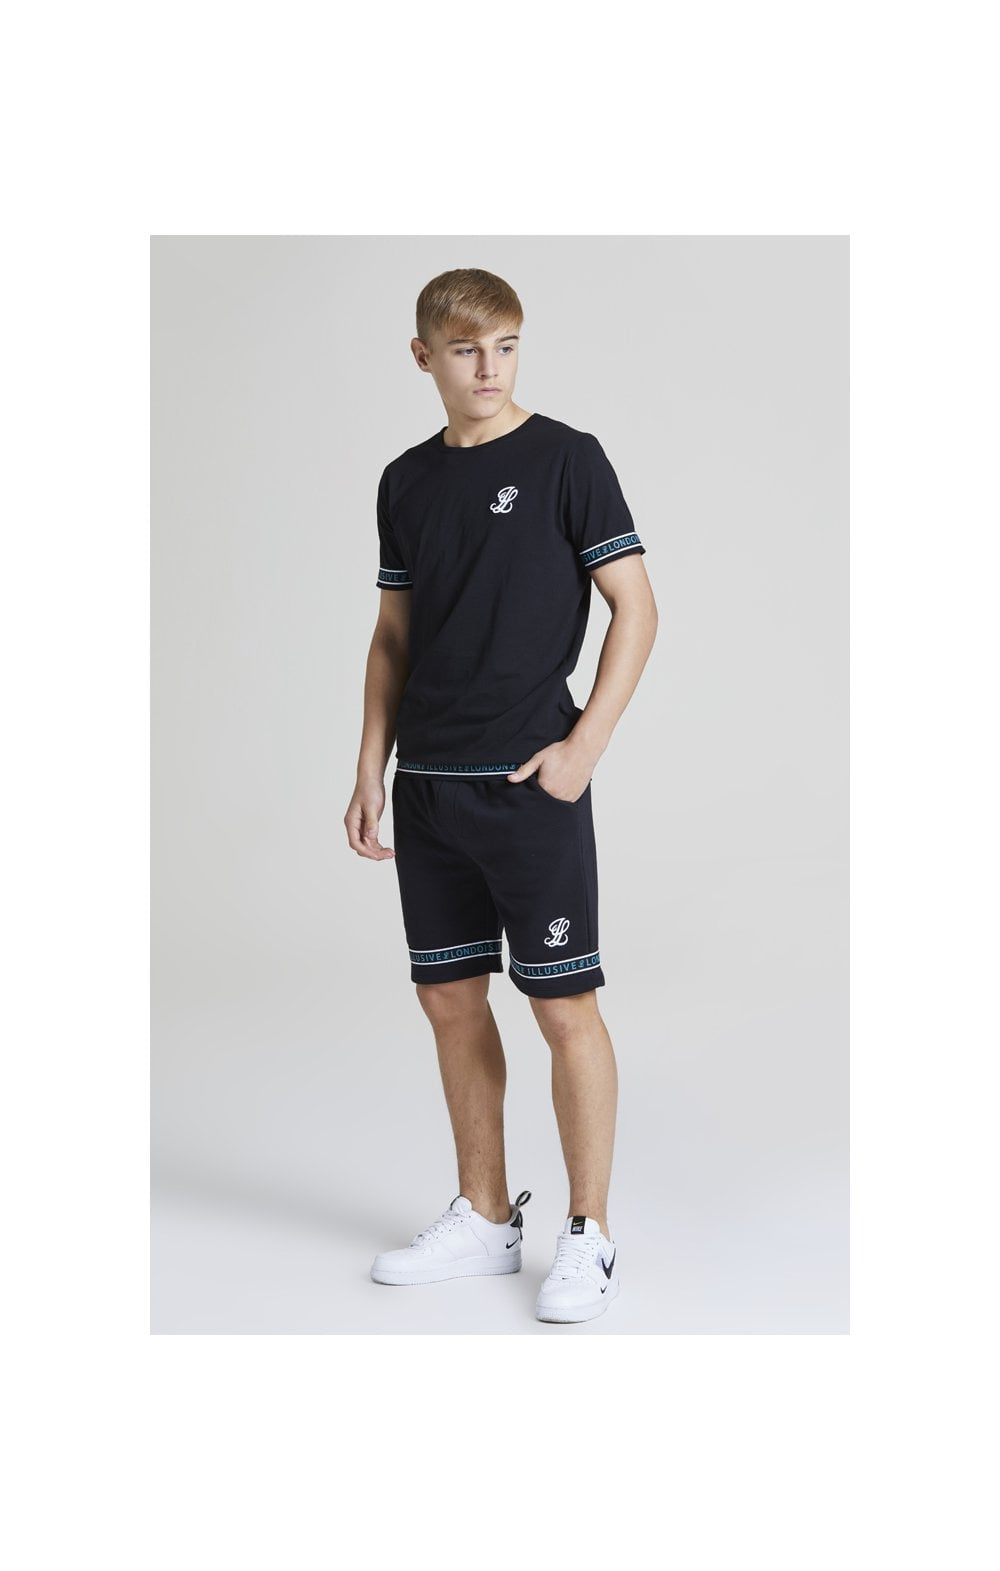 Illusive London Branded Jersey Shorts - Black & Teal Green (2)